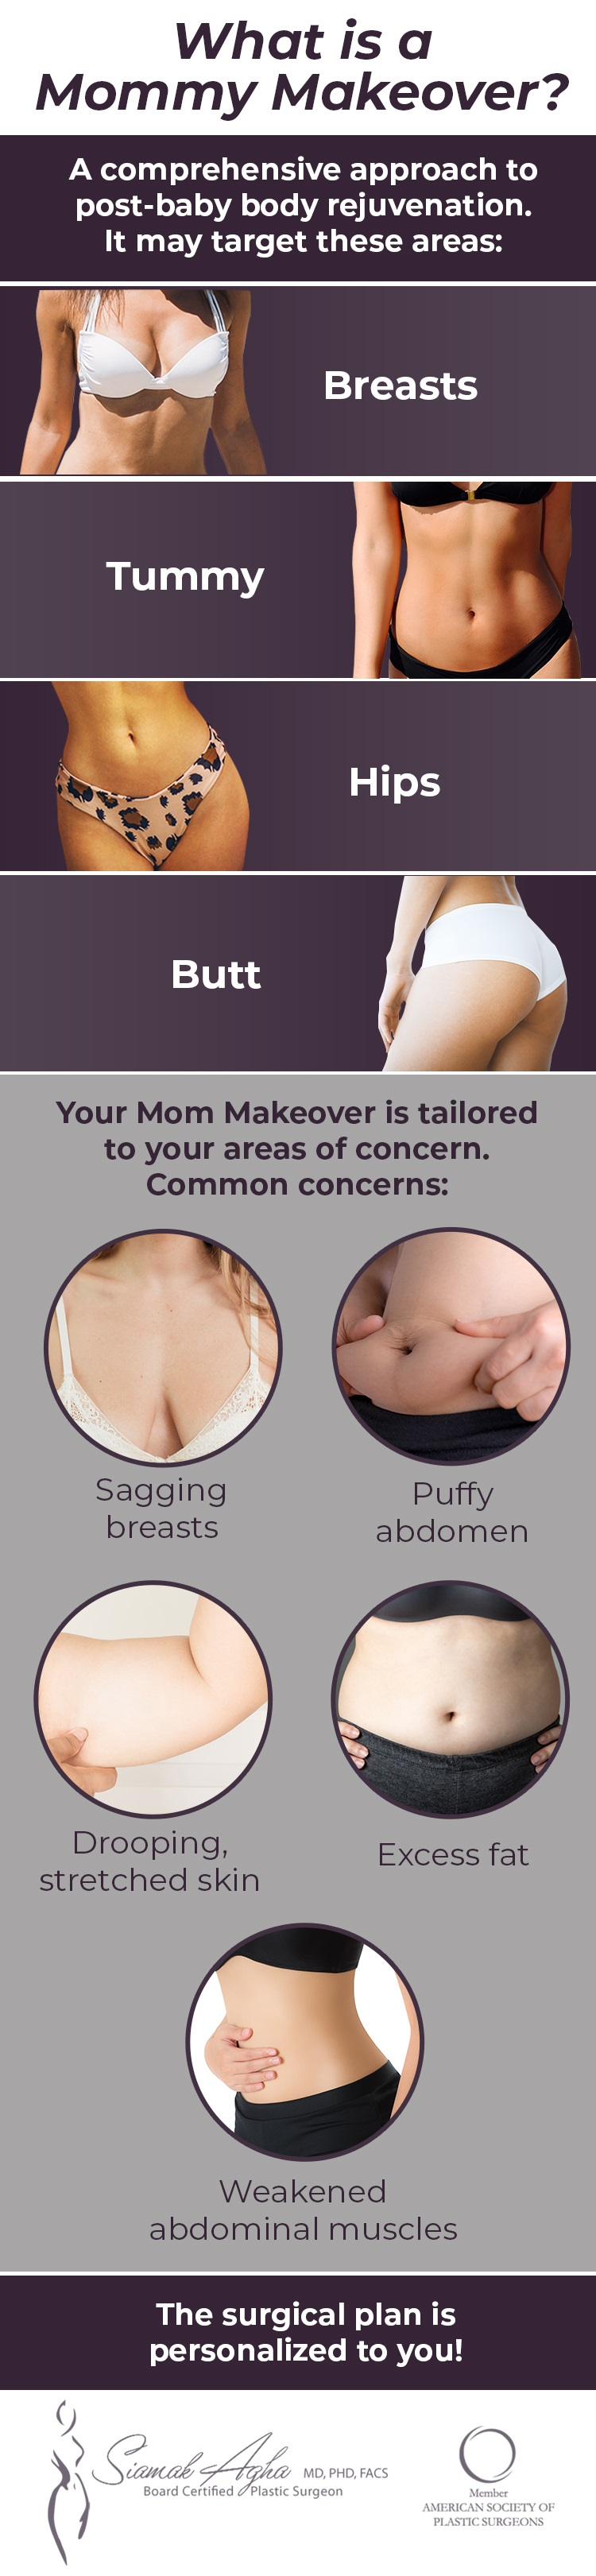 Infographic describing the Mommy Makeover procedures